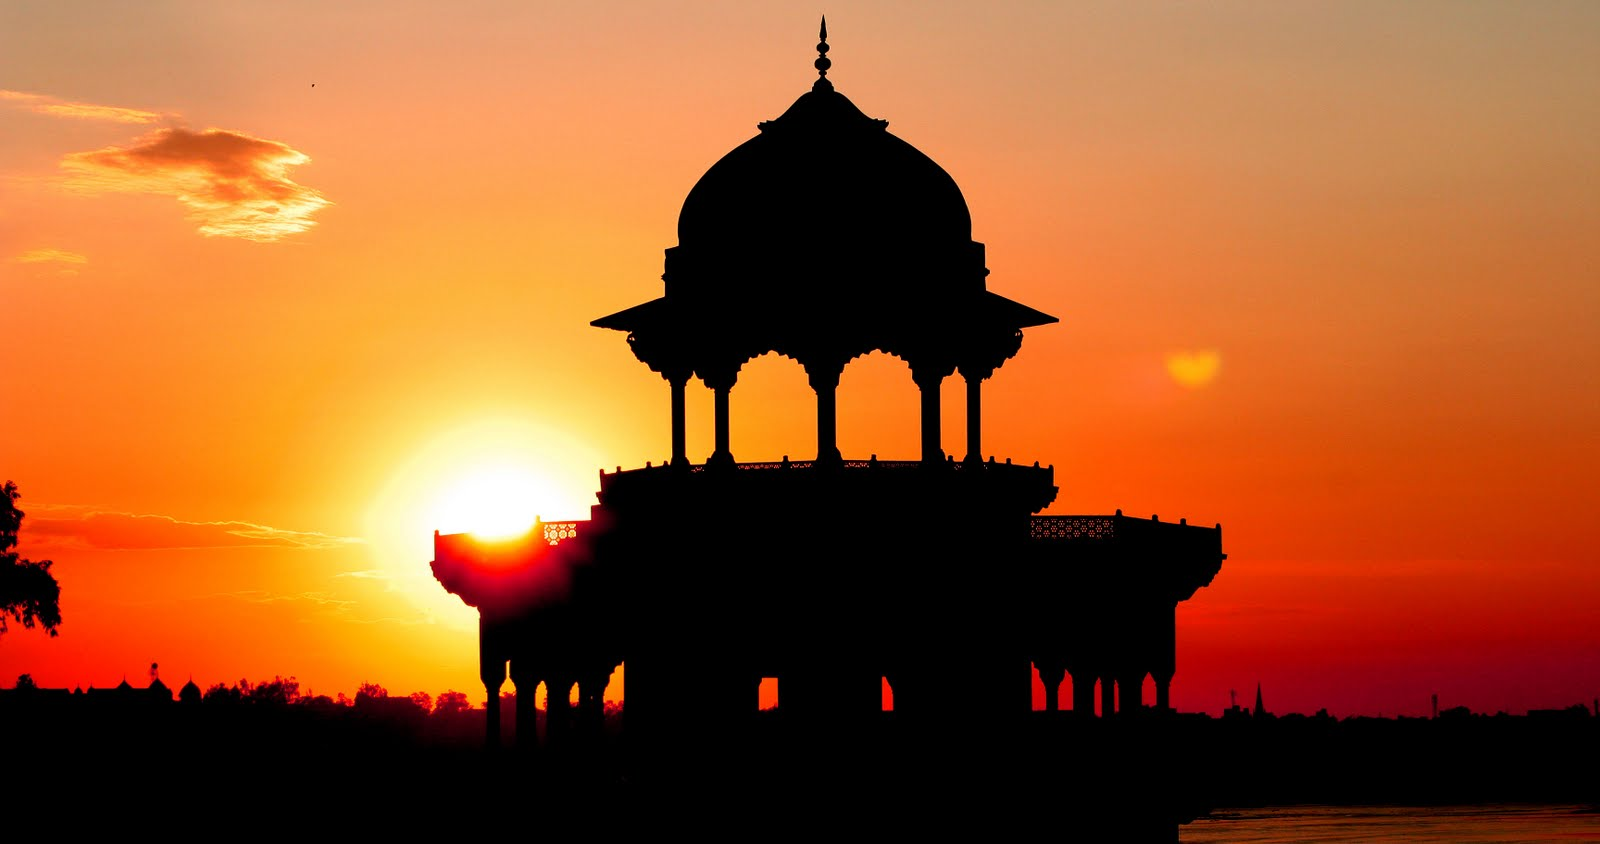 Sunset, Red Fort